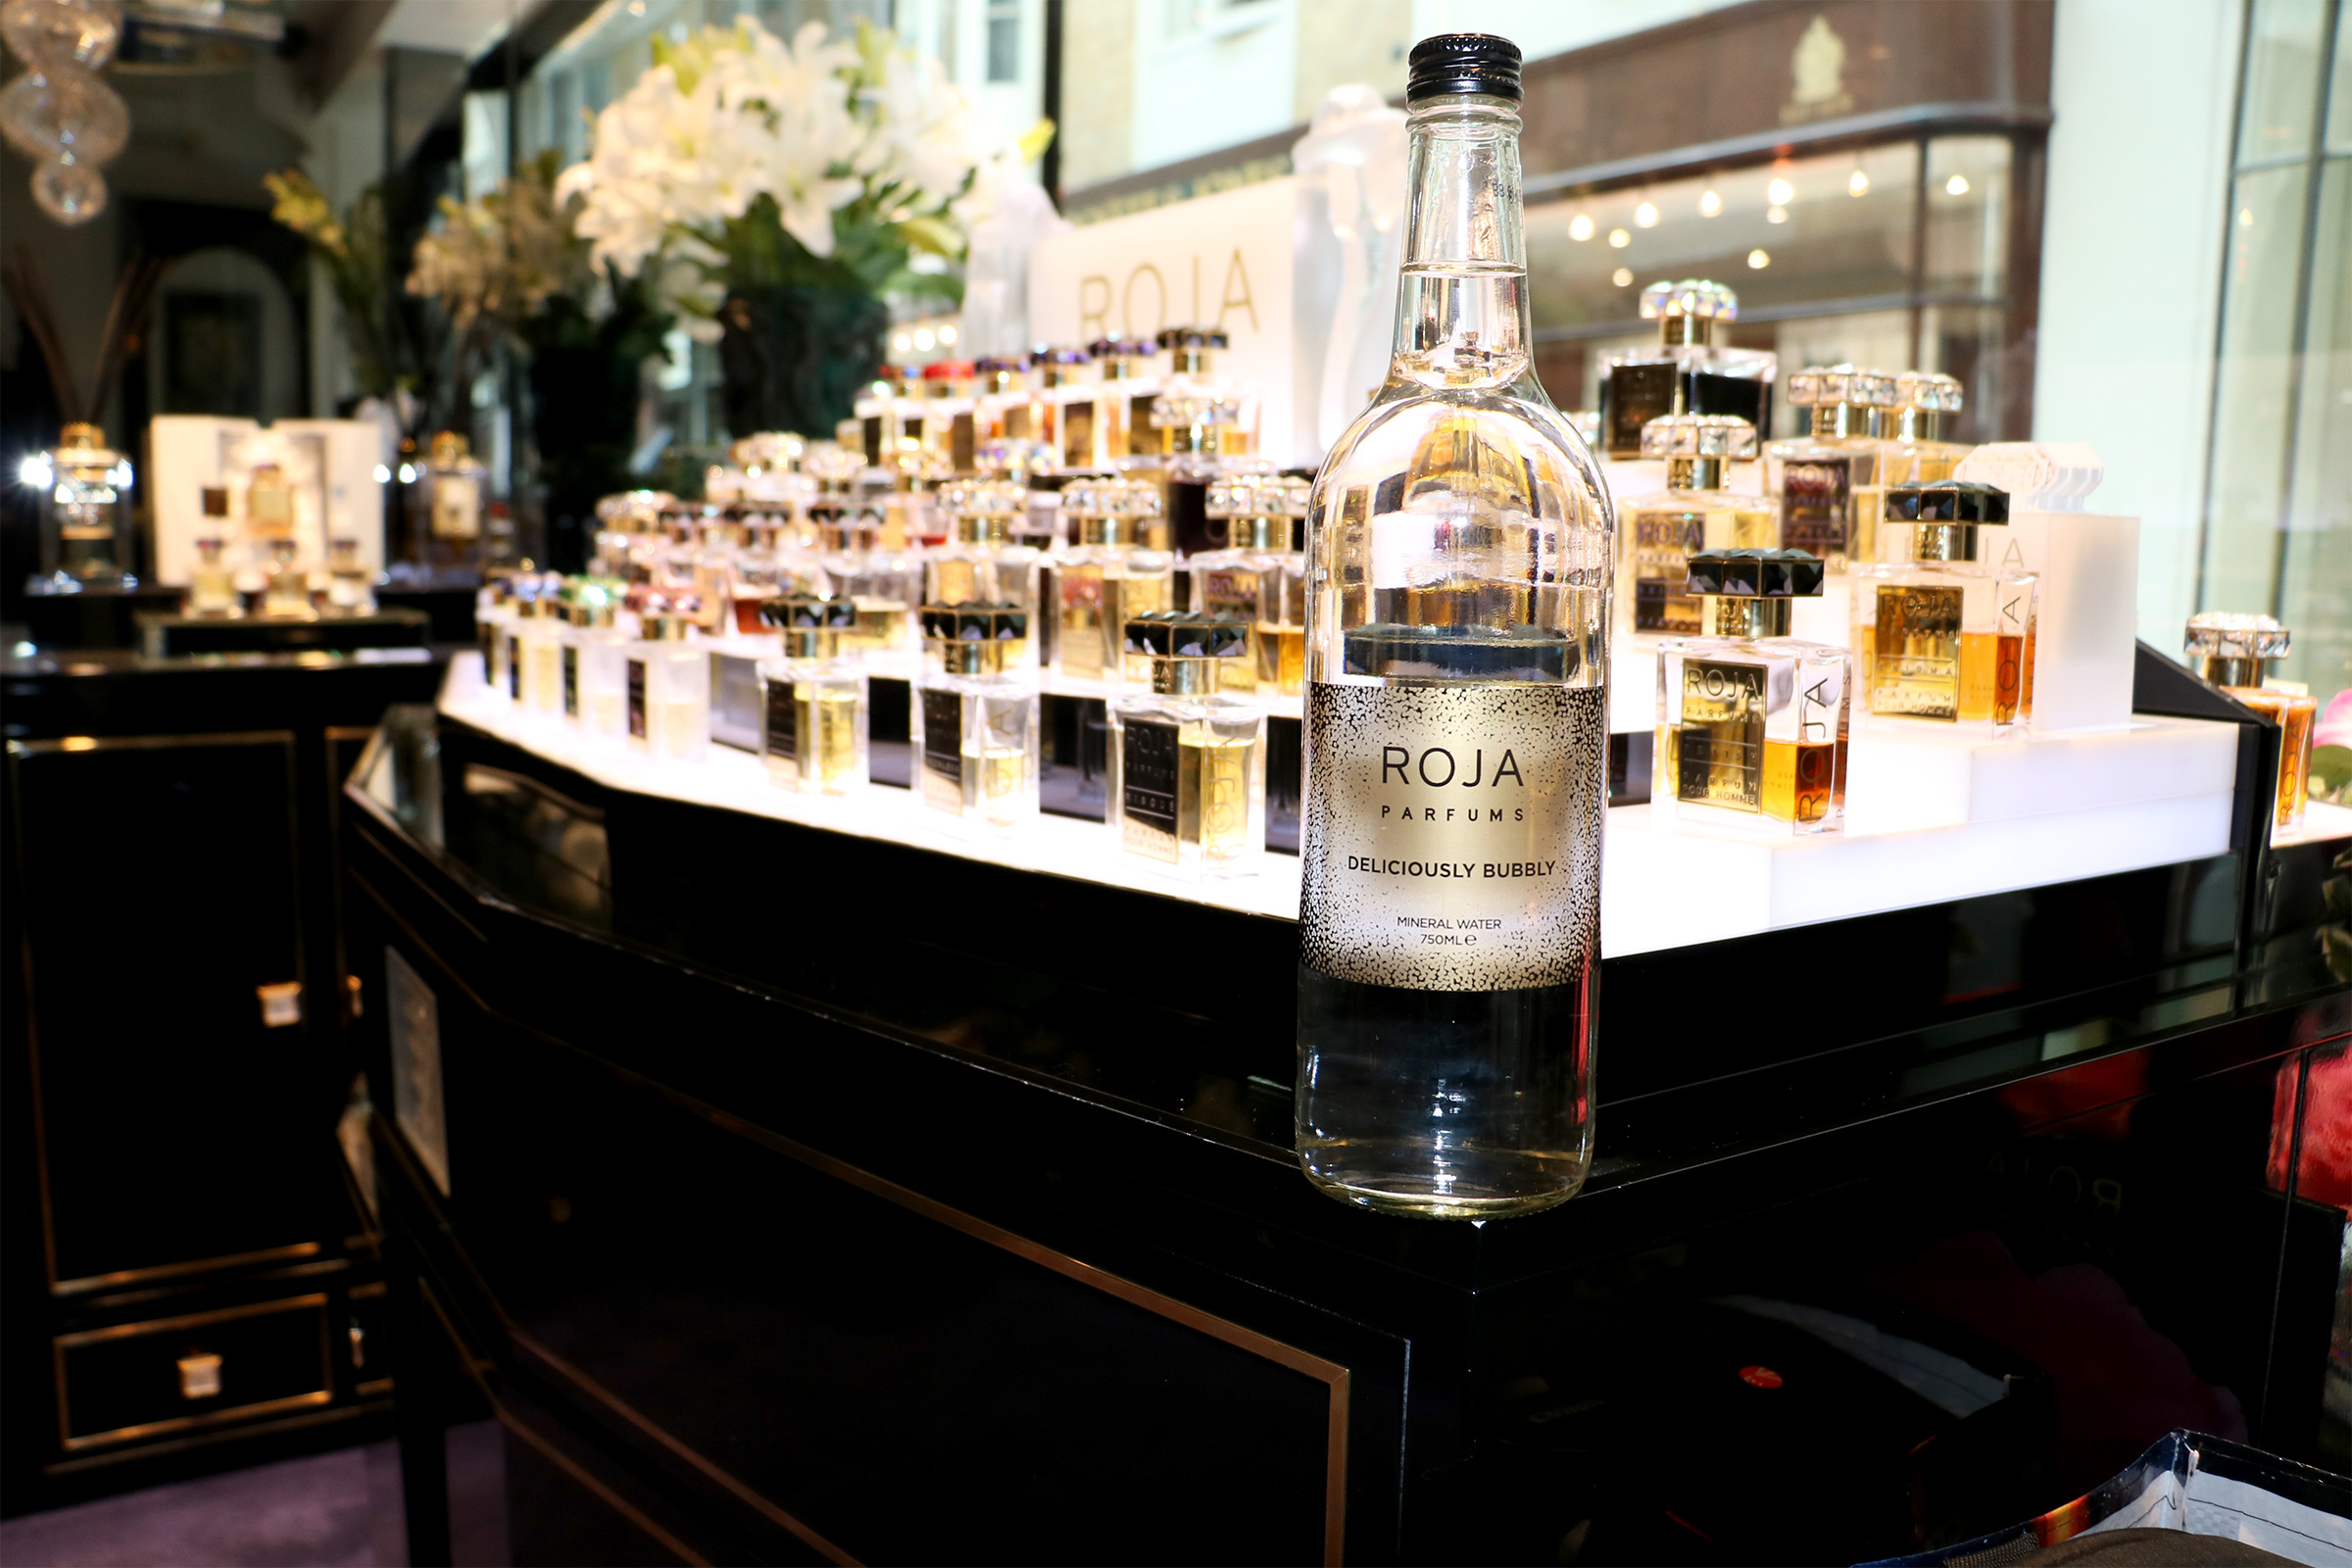 ROJA Parfums Deliciously Bubbly Mineral Water